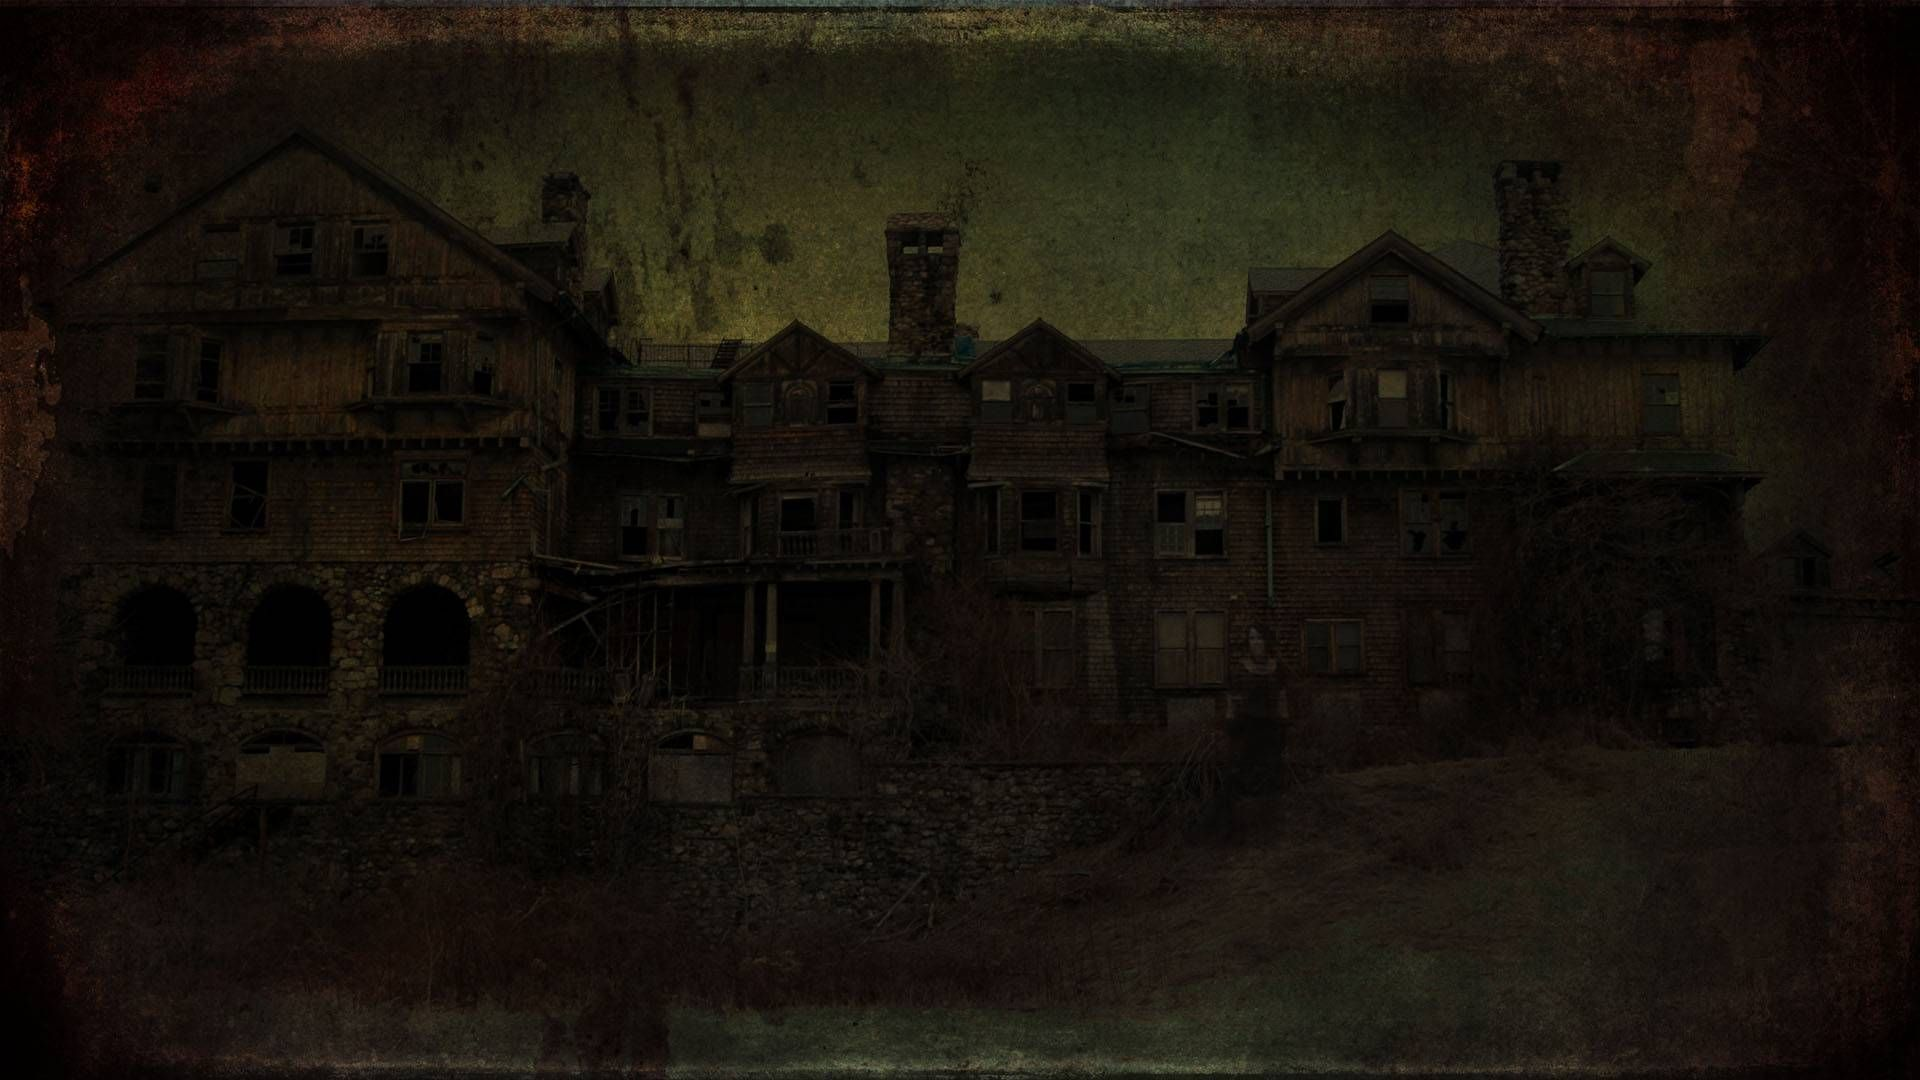 Uncover the secrets of a dark and mysterious house in Haunted Manor. Description from fireworksimages.net. I searched for this on bing.com/images